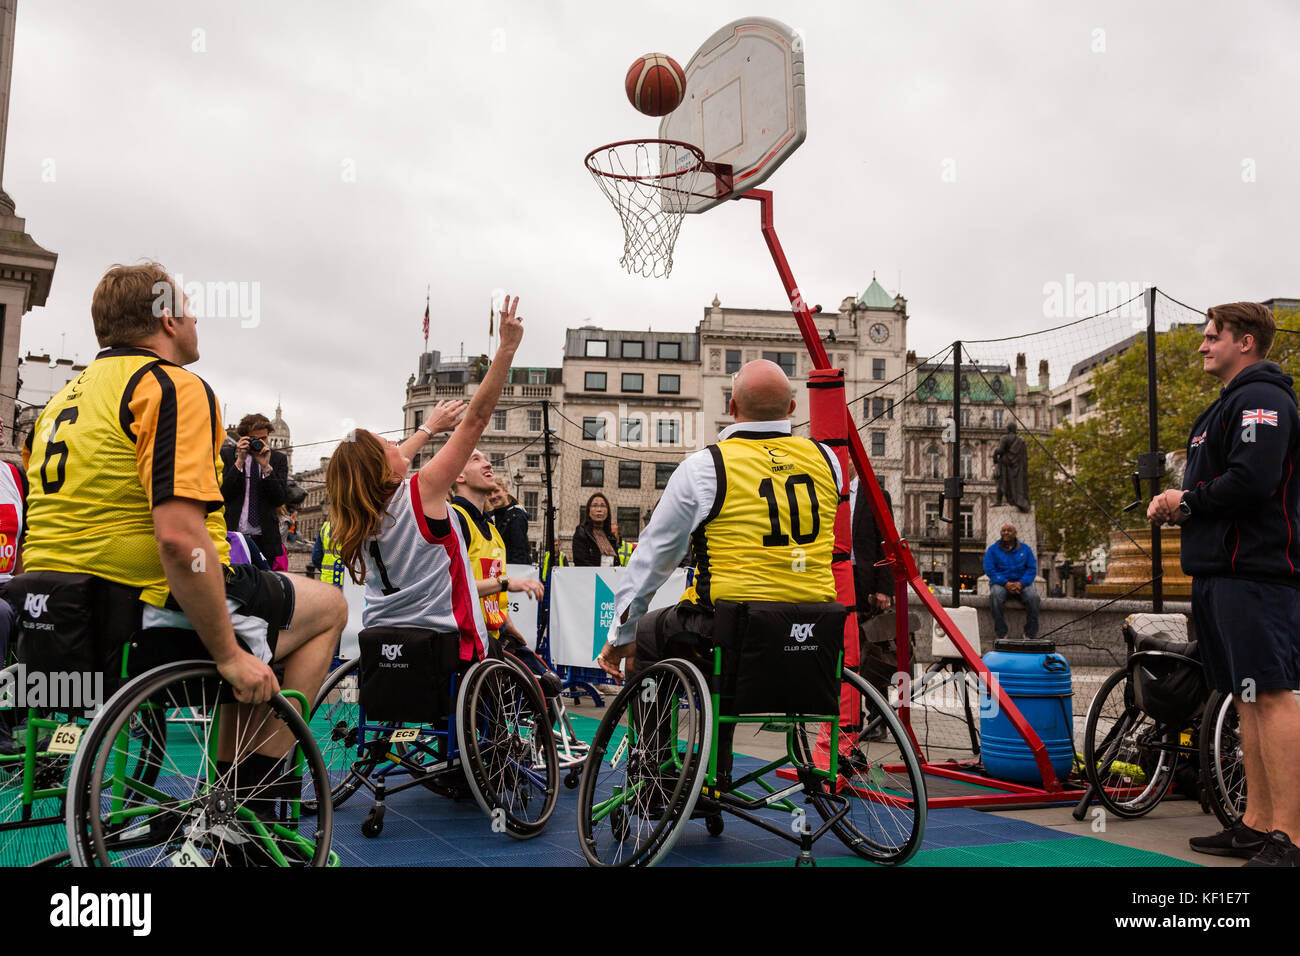 London, UK. 24th October, 2017. Conservative MP Gillian Keegan shoots and scores in a wheelchair basketball match - Stock Image